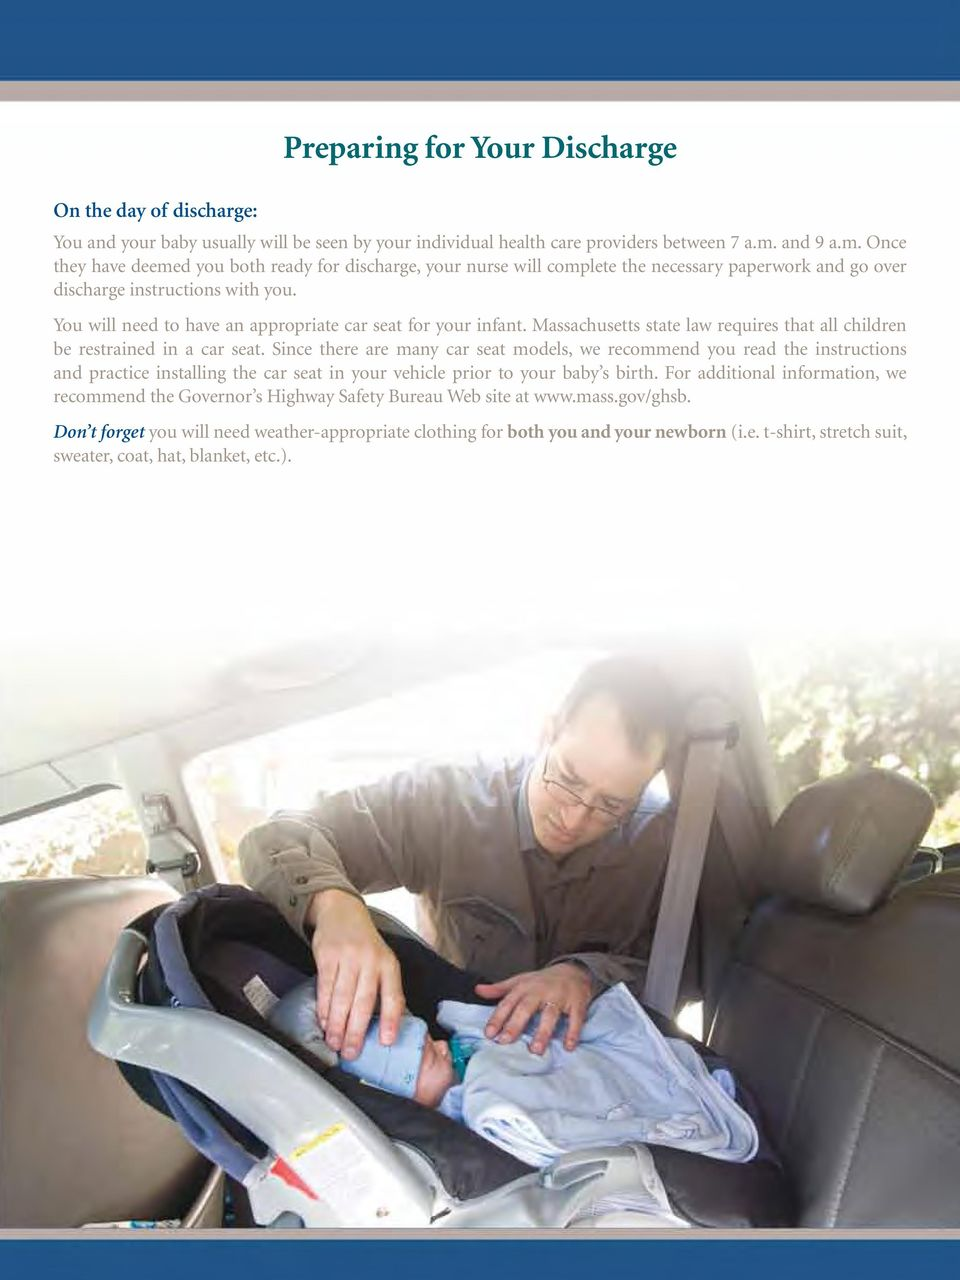 You will need to have an appropriate car seat for your infant. Massachusetts state law requires that all children be restrained in a car seat.